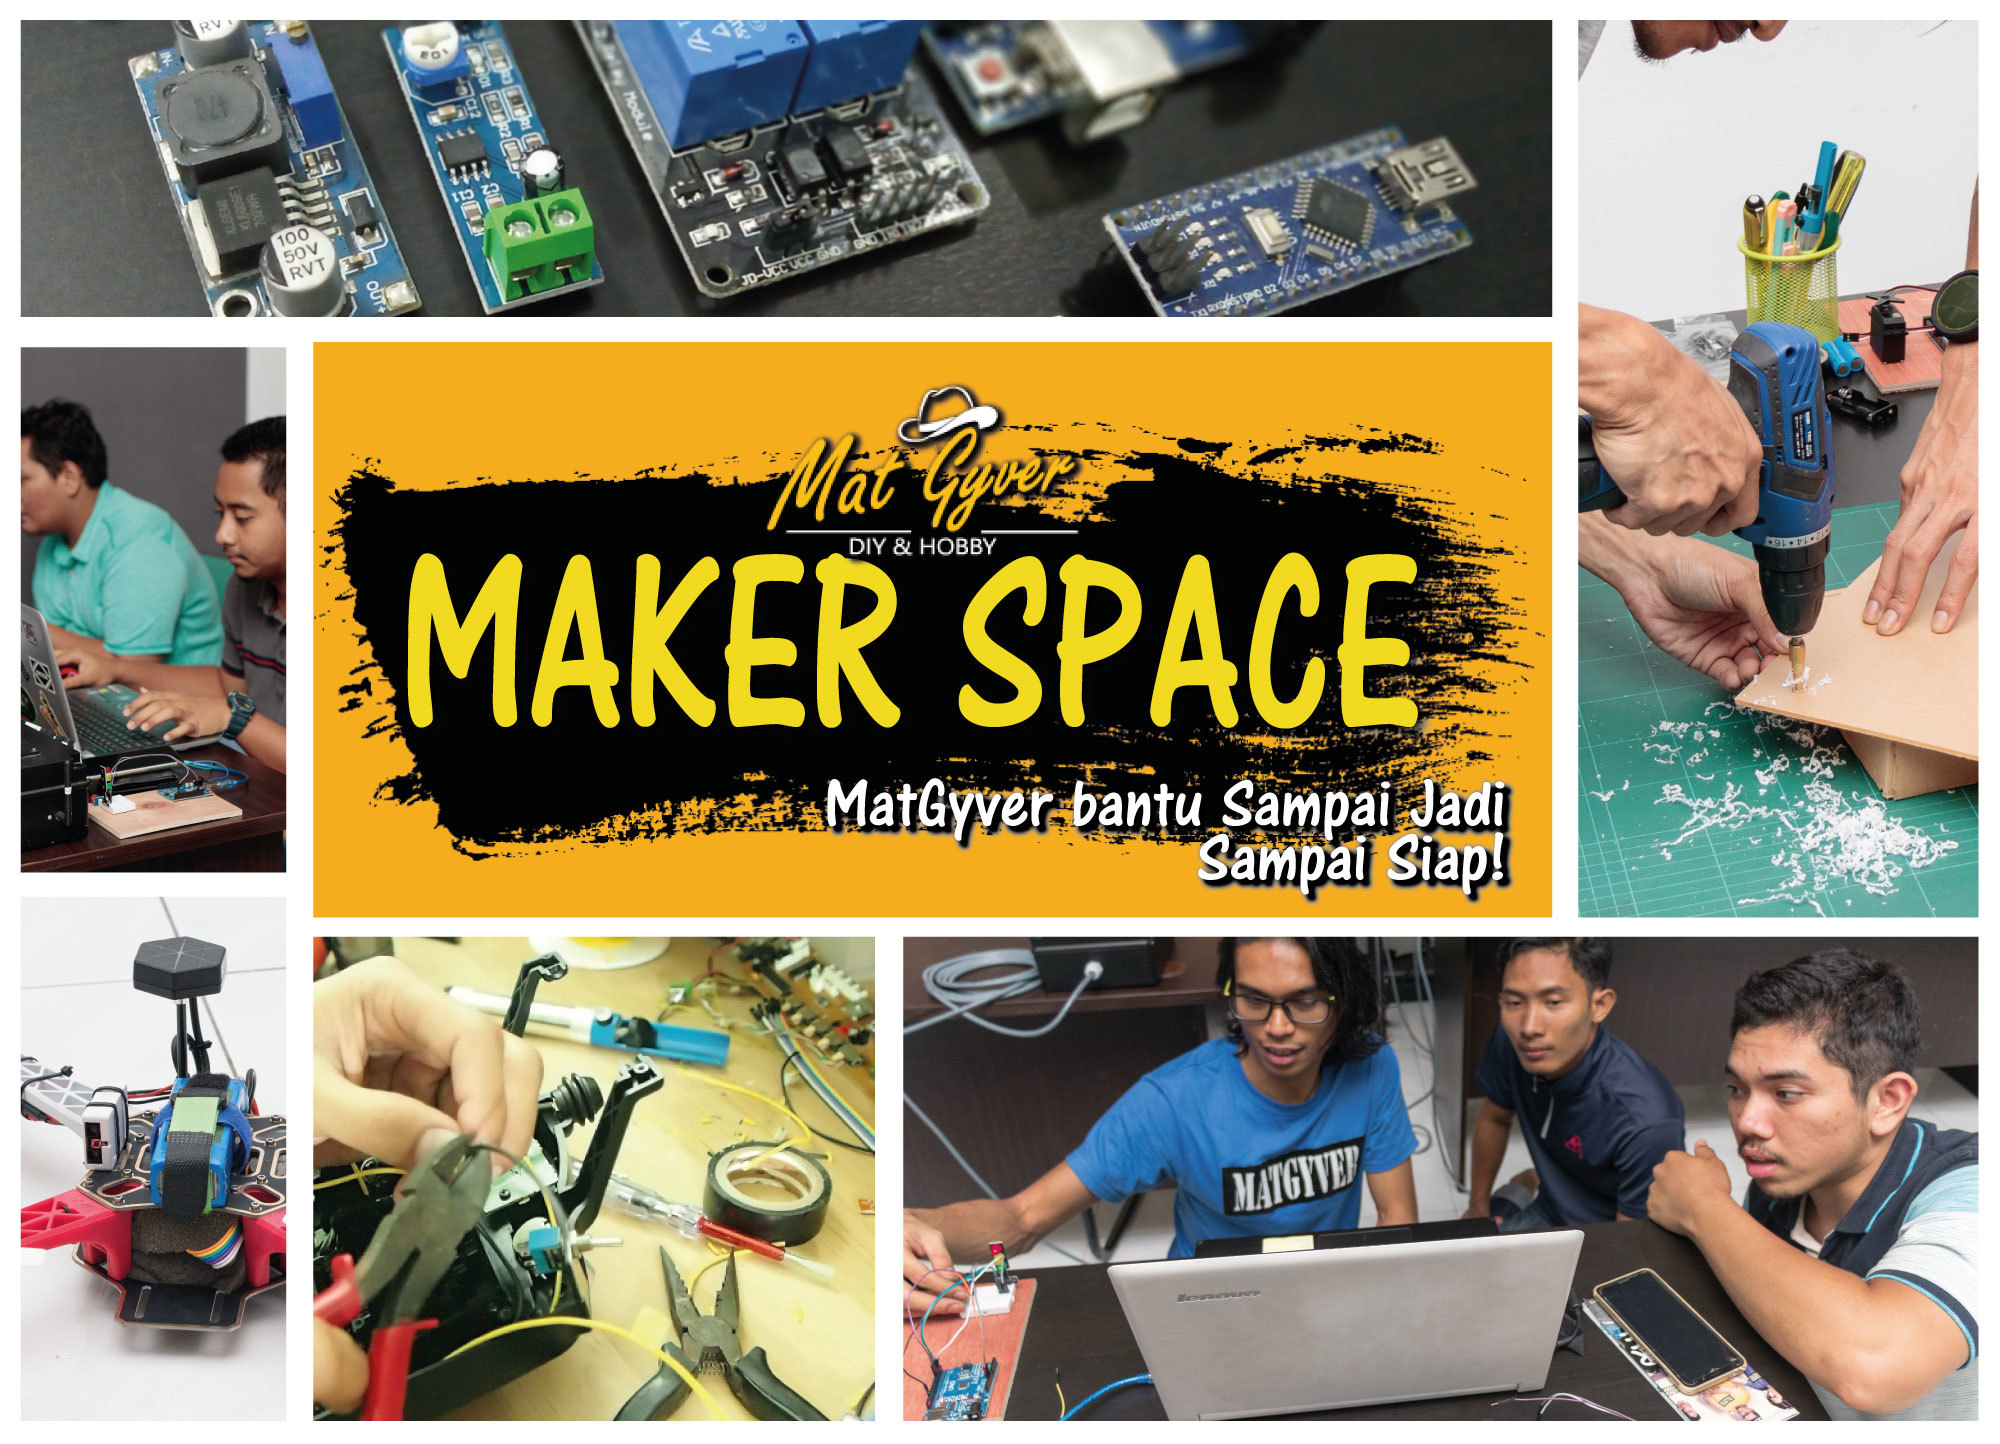 makerspace-landing-page-photo-1